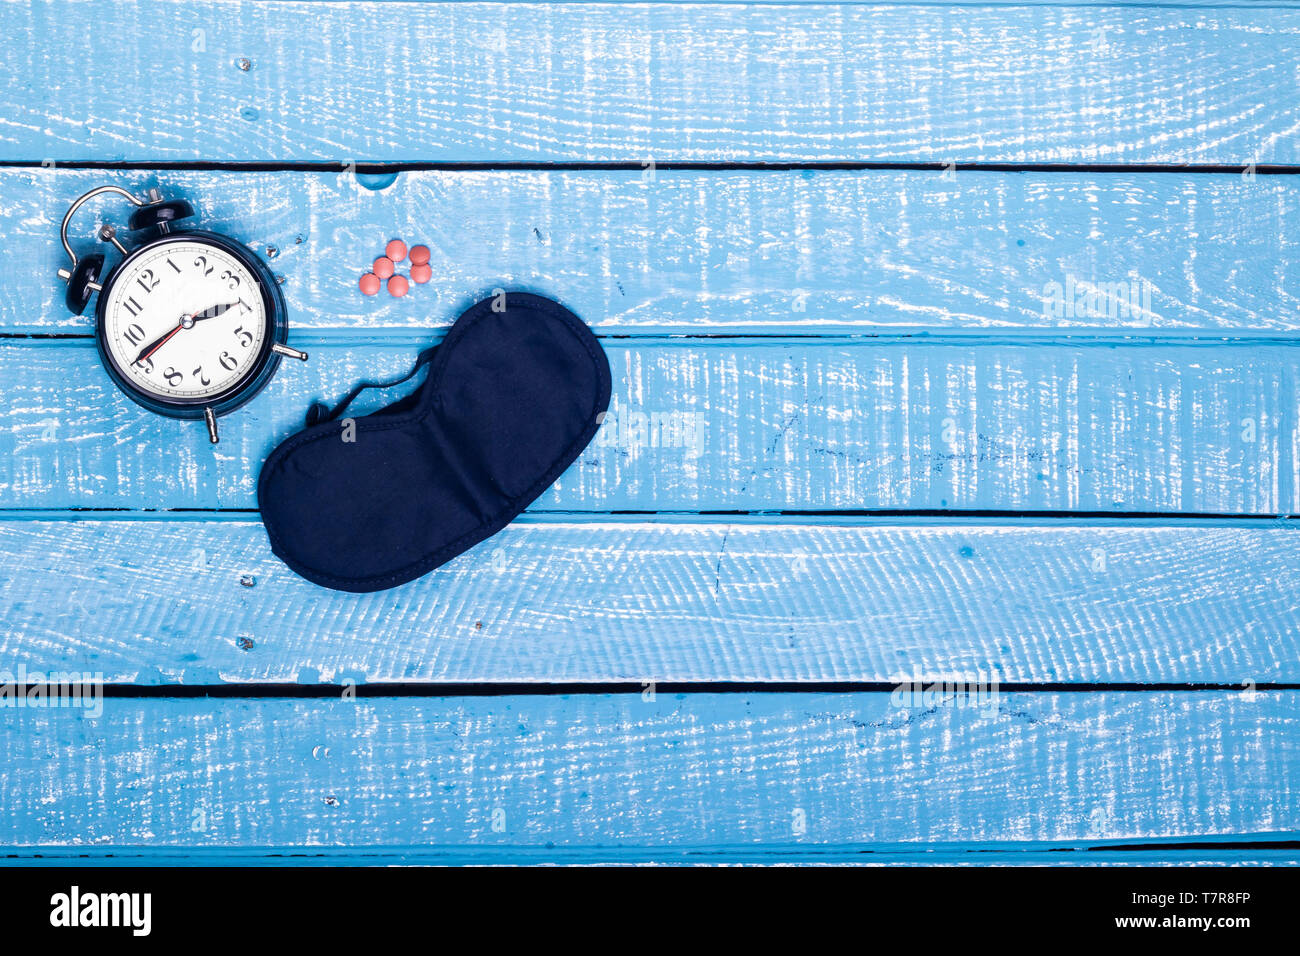 Sleep concept showing an alarm clock, sleeping pills and eye mask on a weathered blue background - Stock Image